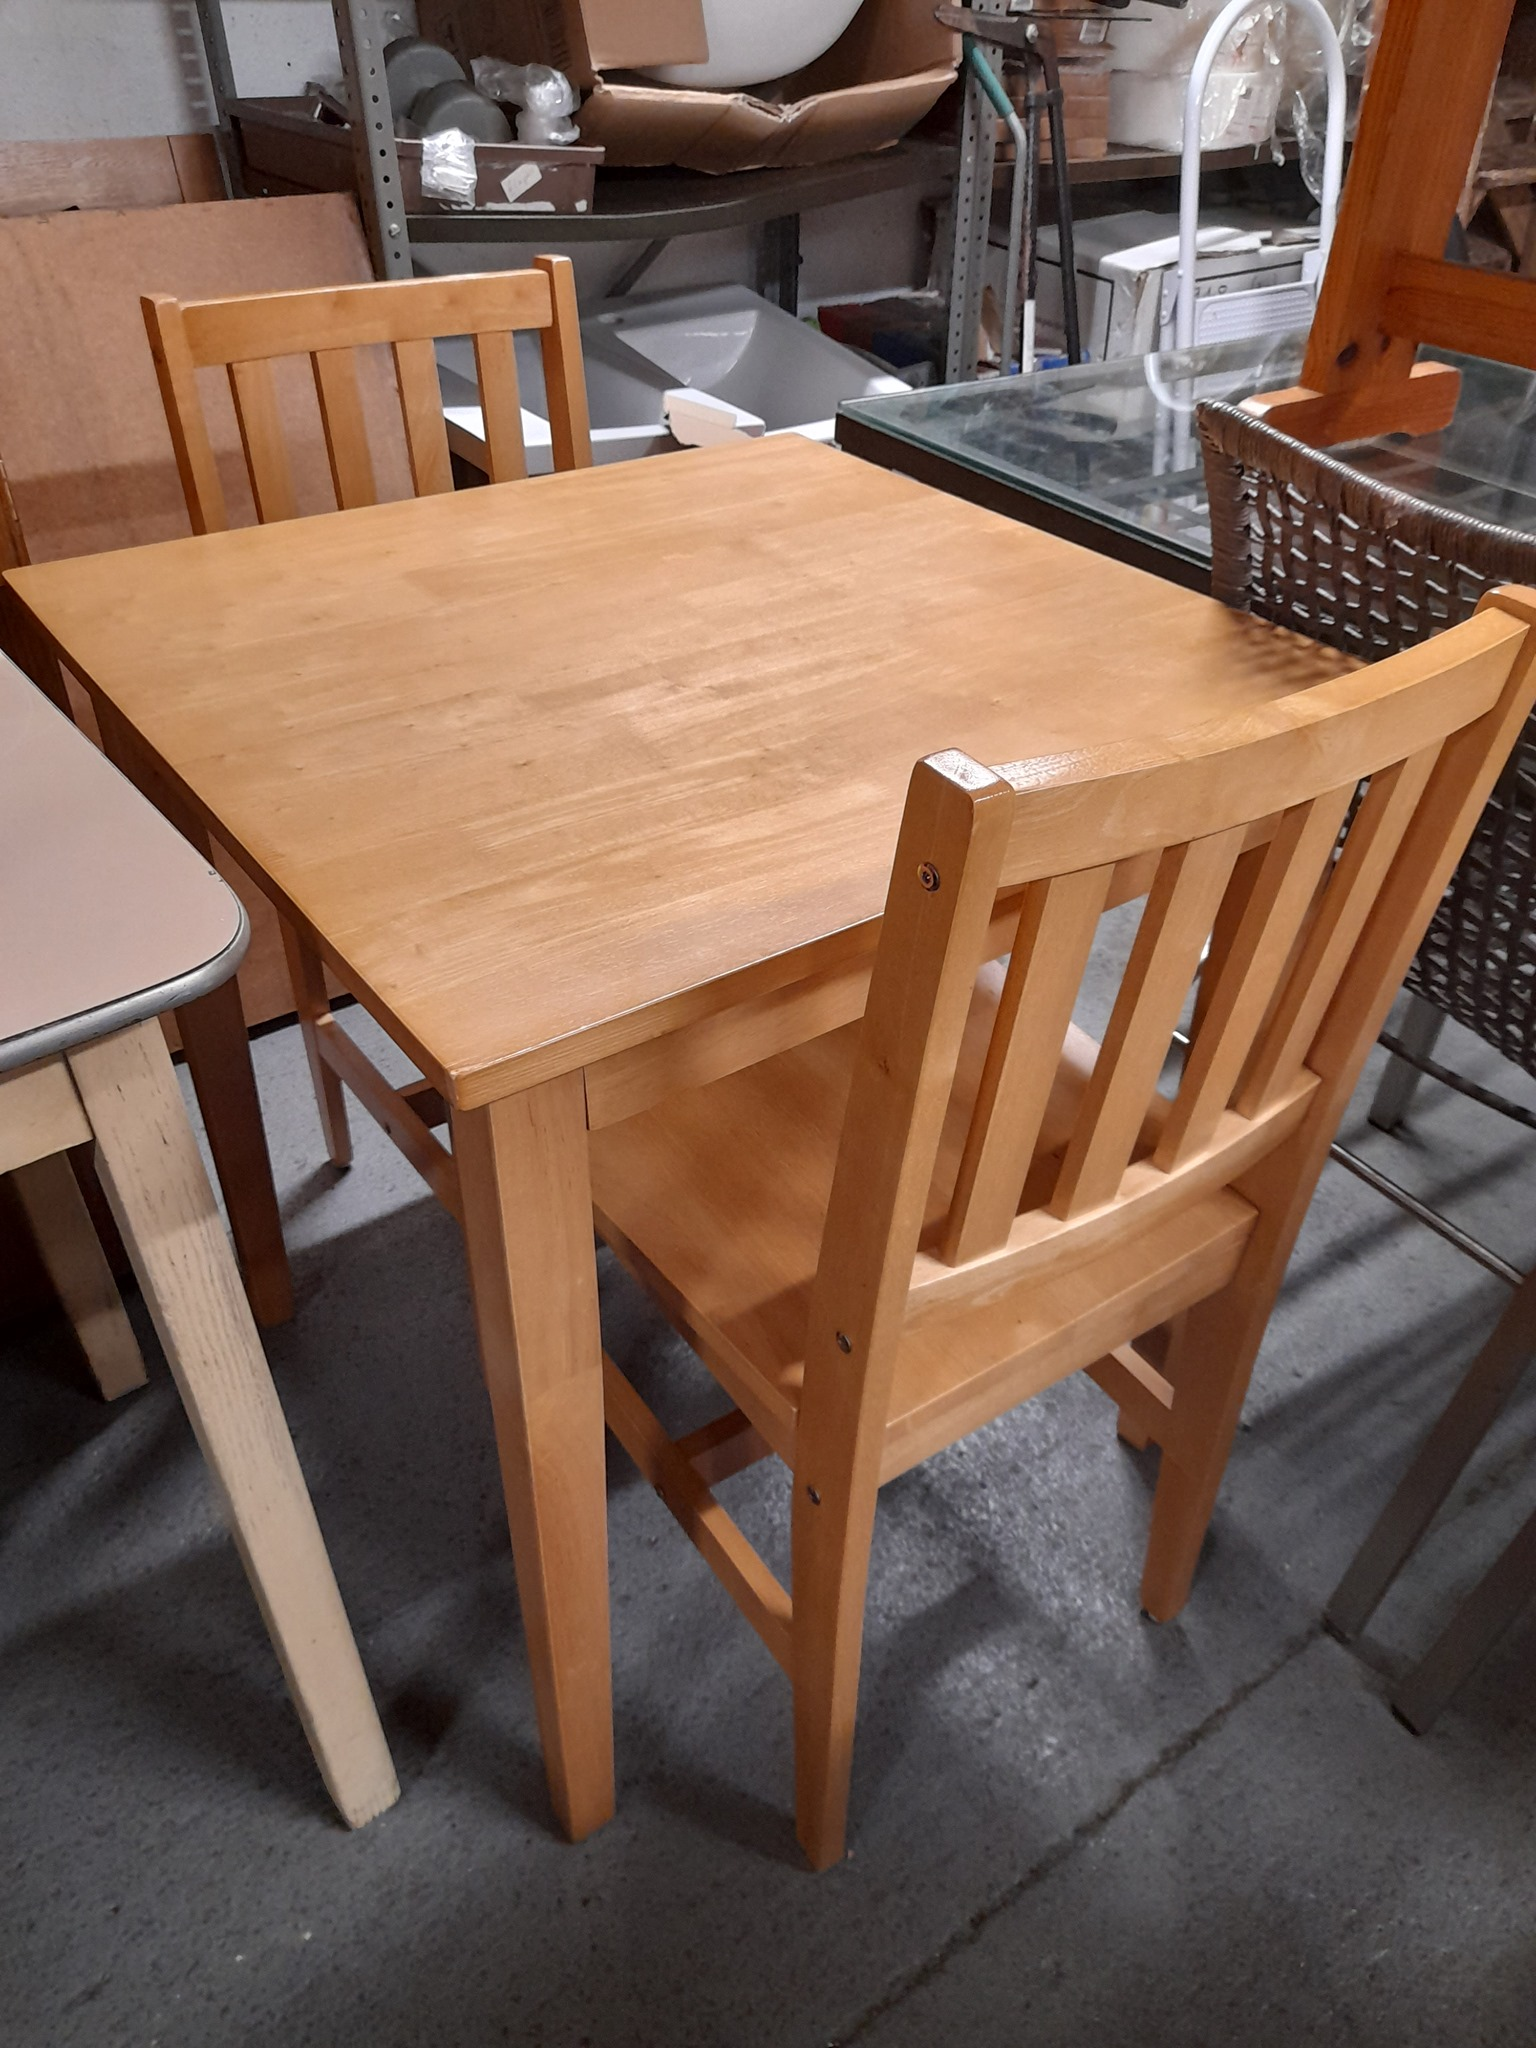 BEECH TABLE AND TWO CHAIRS £65